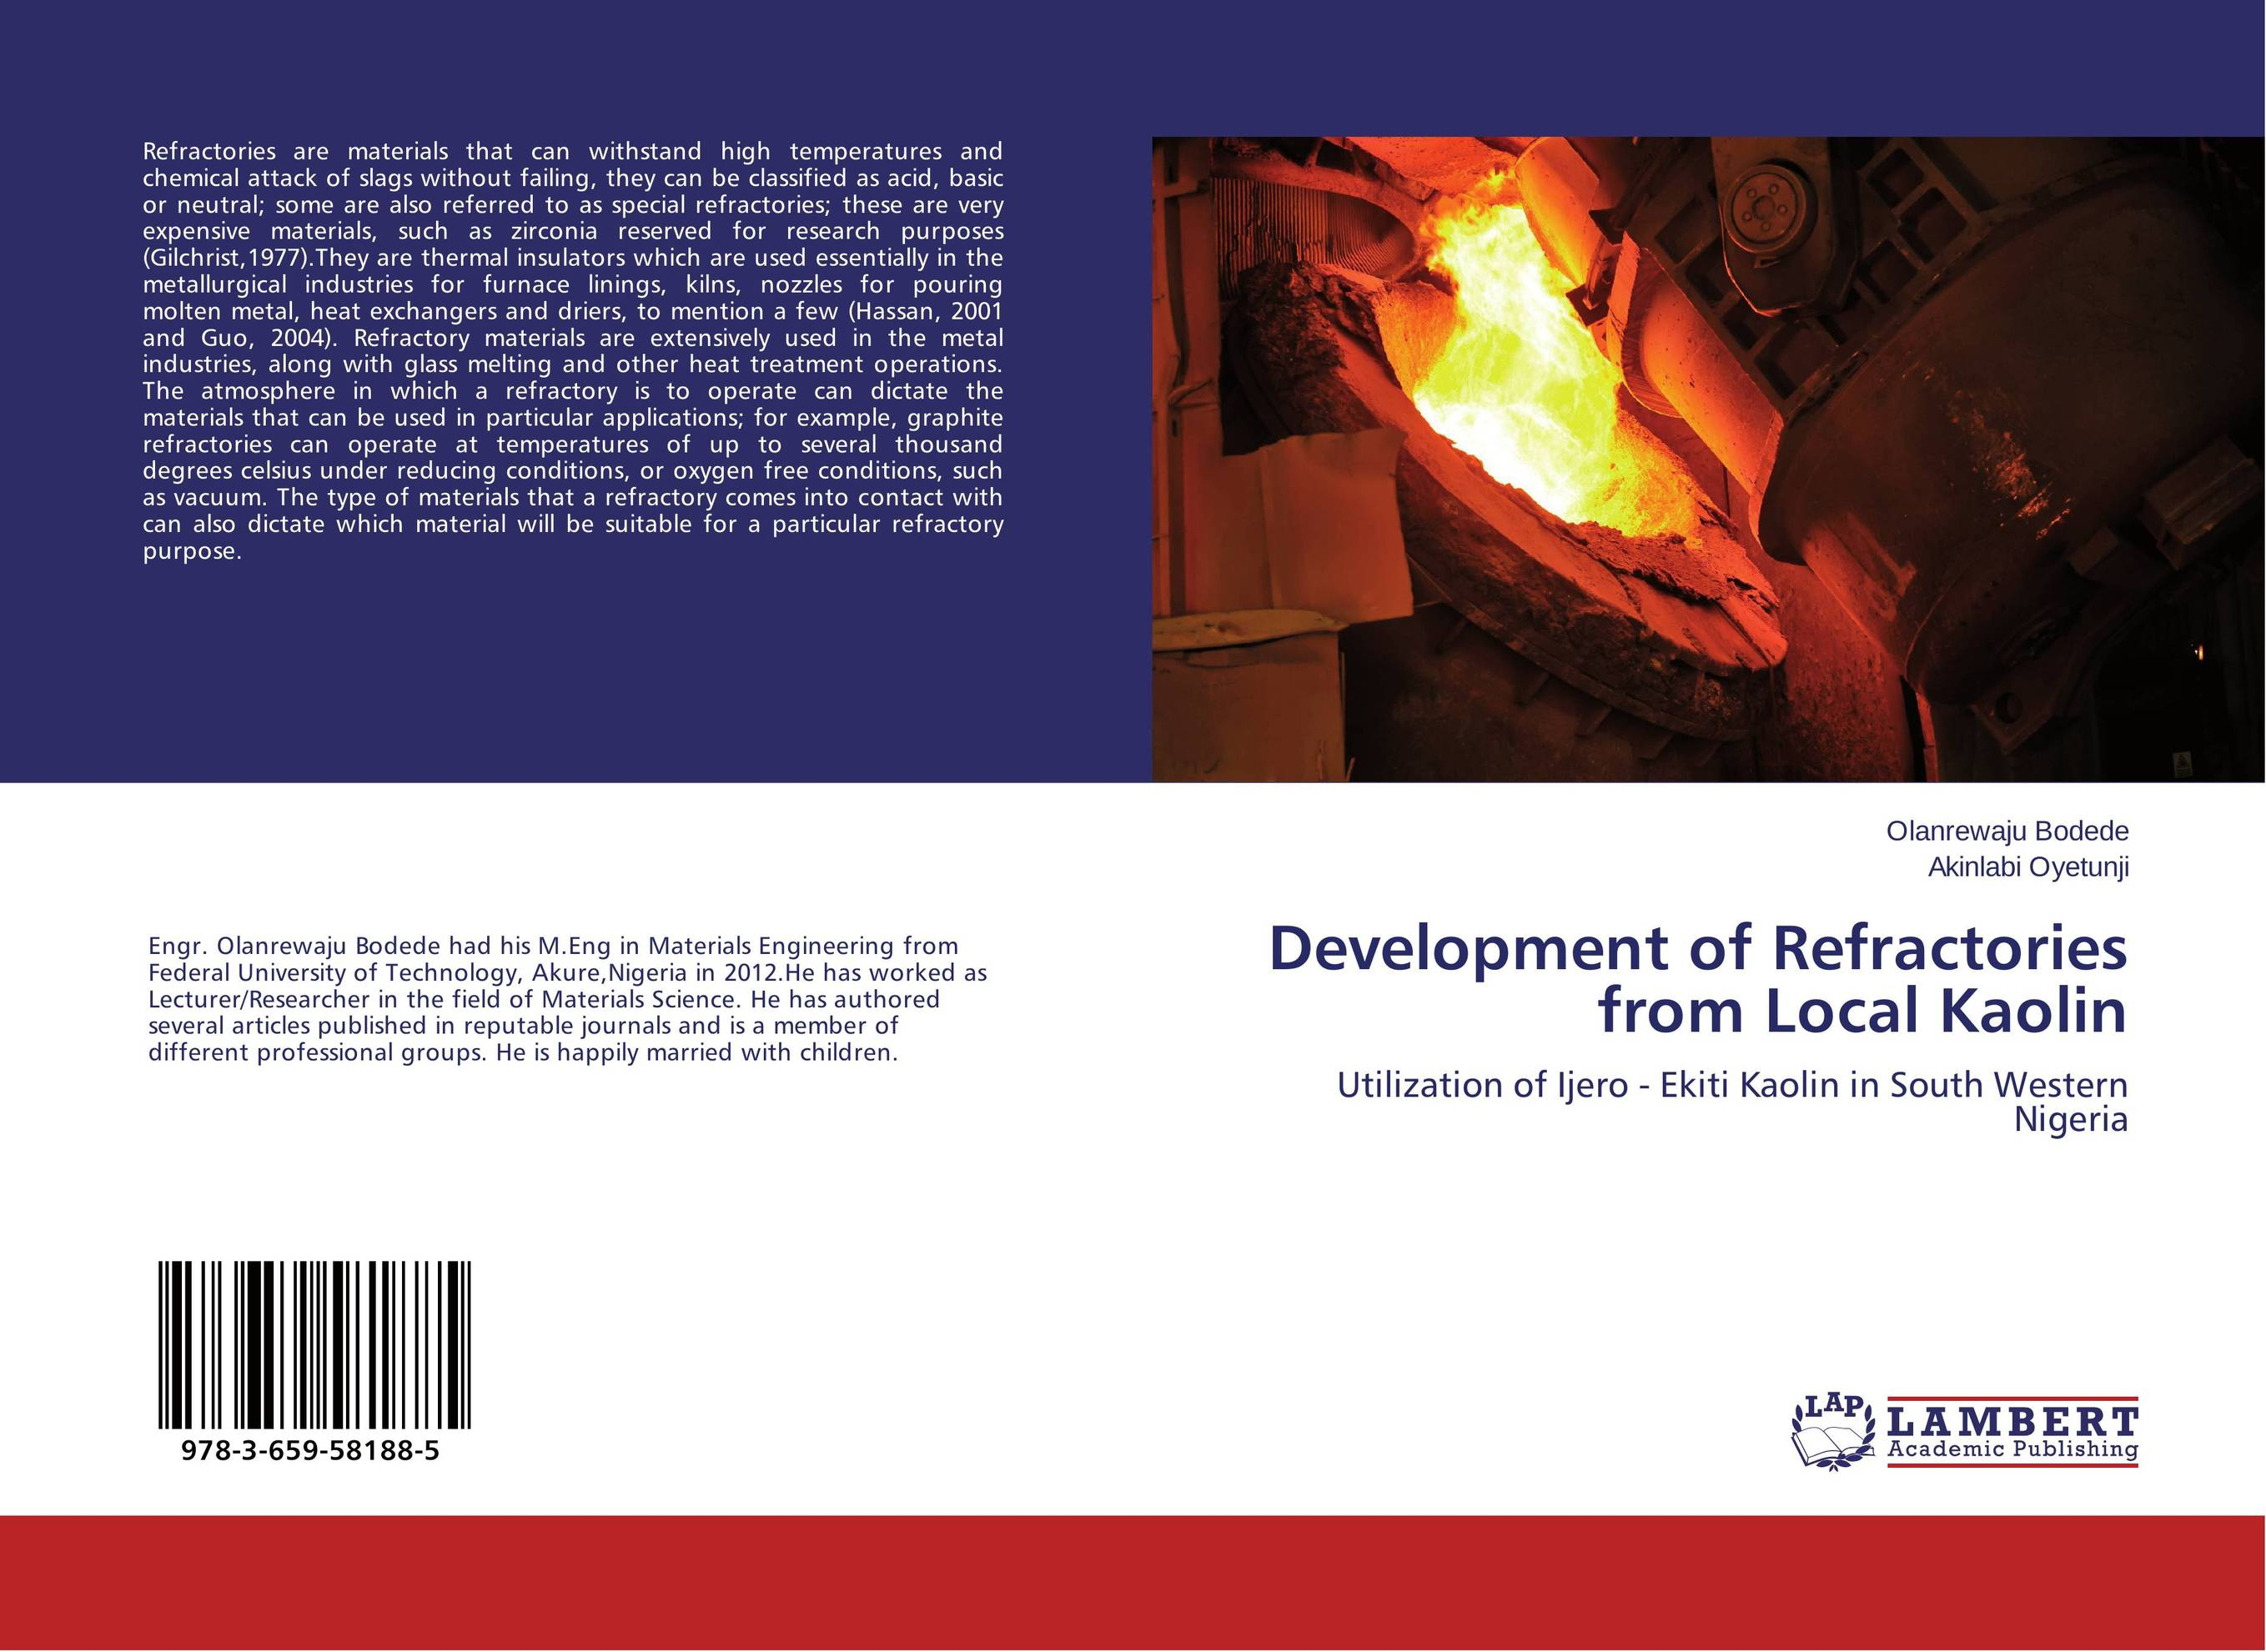 Development of Refractories from Local Kaolin the valves are self acting i e they operate without the supply of auxiliary energy such as electricity or compressed air